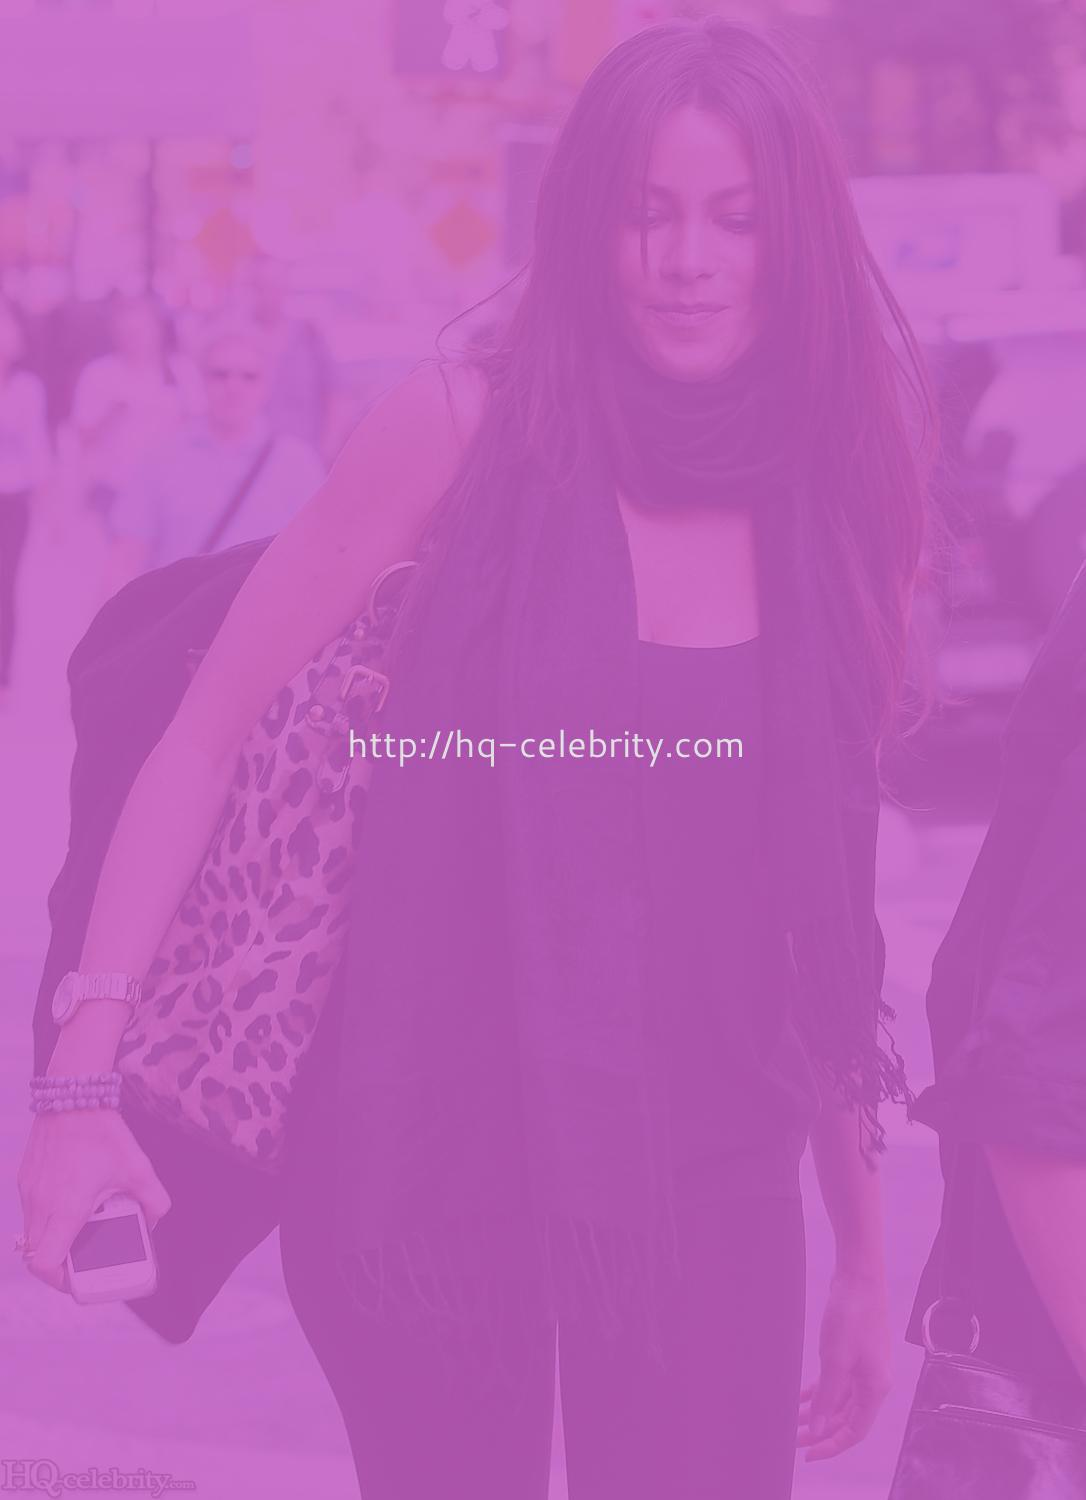 Celebrity Pictures - Photo Gallery - Contactmusic.com